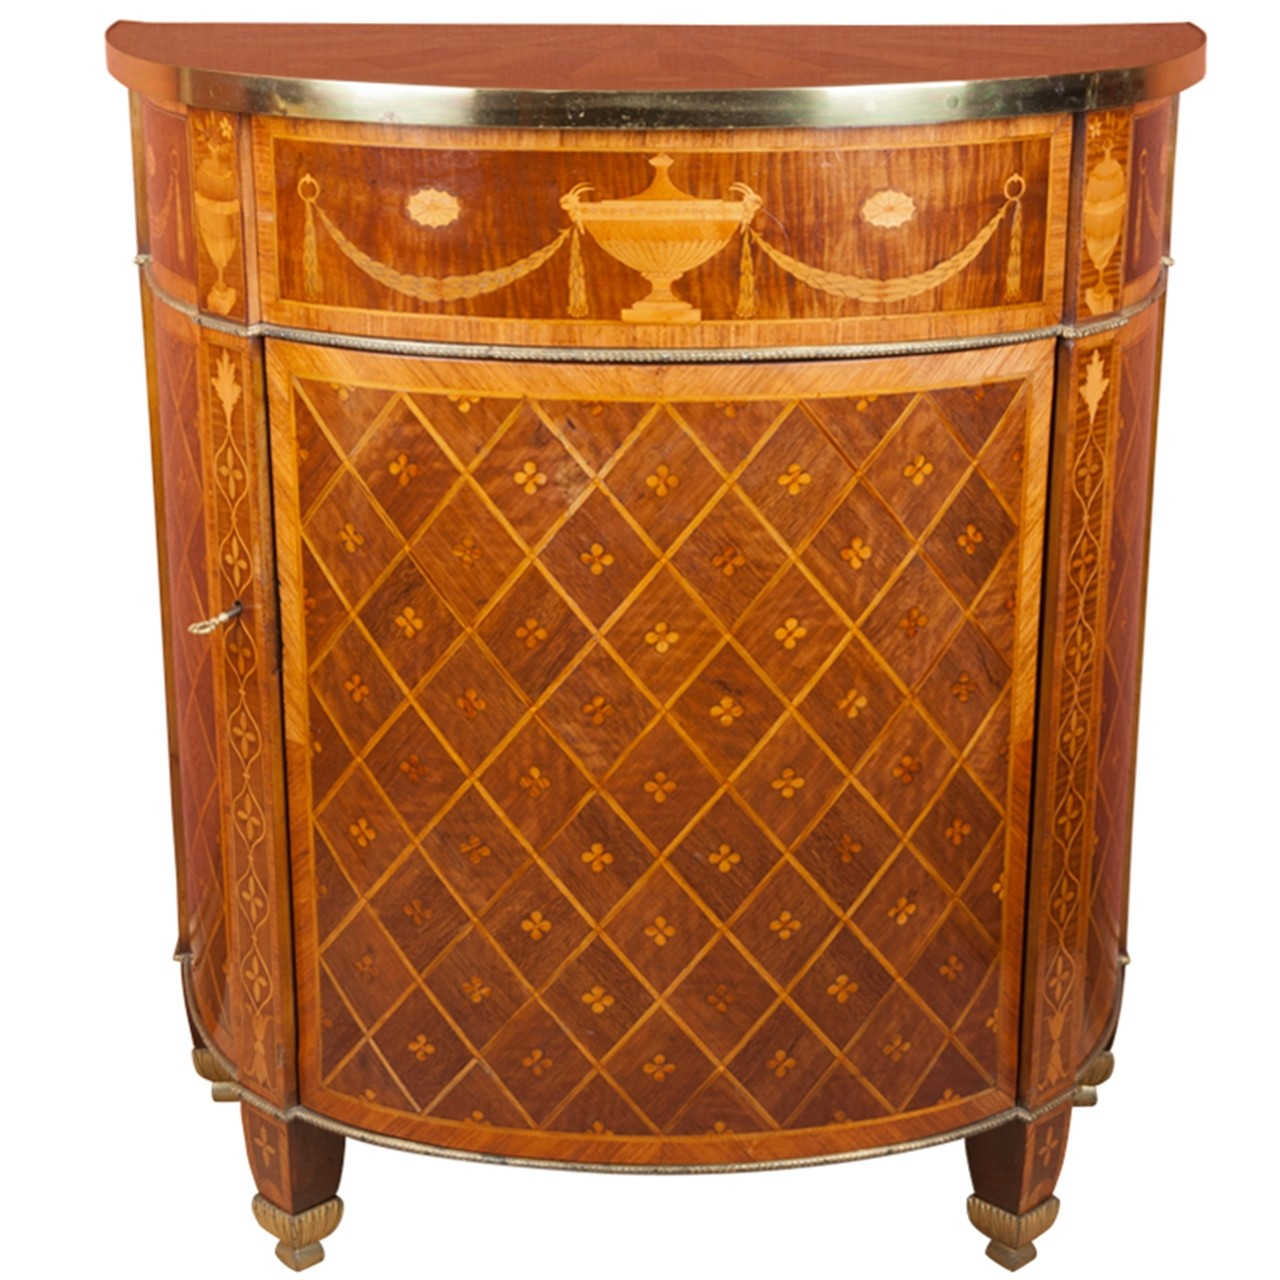 George III demi-lune commode in the manner of John Linnell, ca. 1790, offered by John Bly